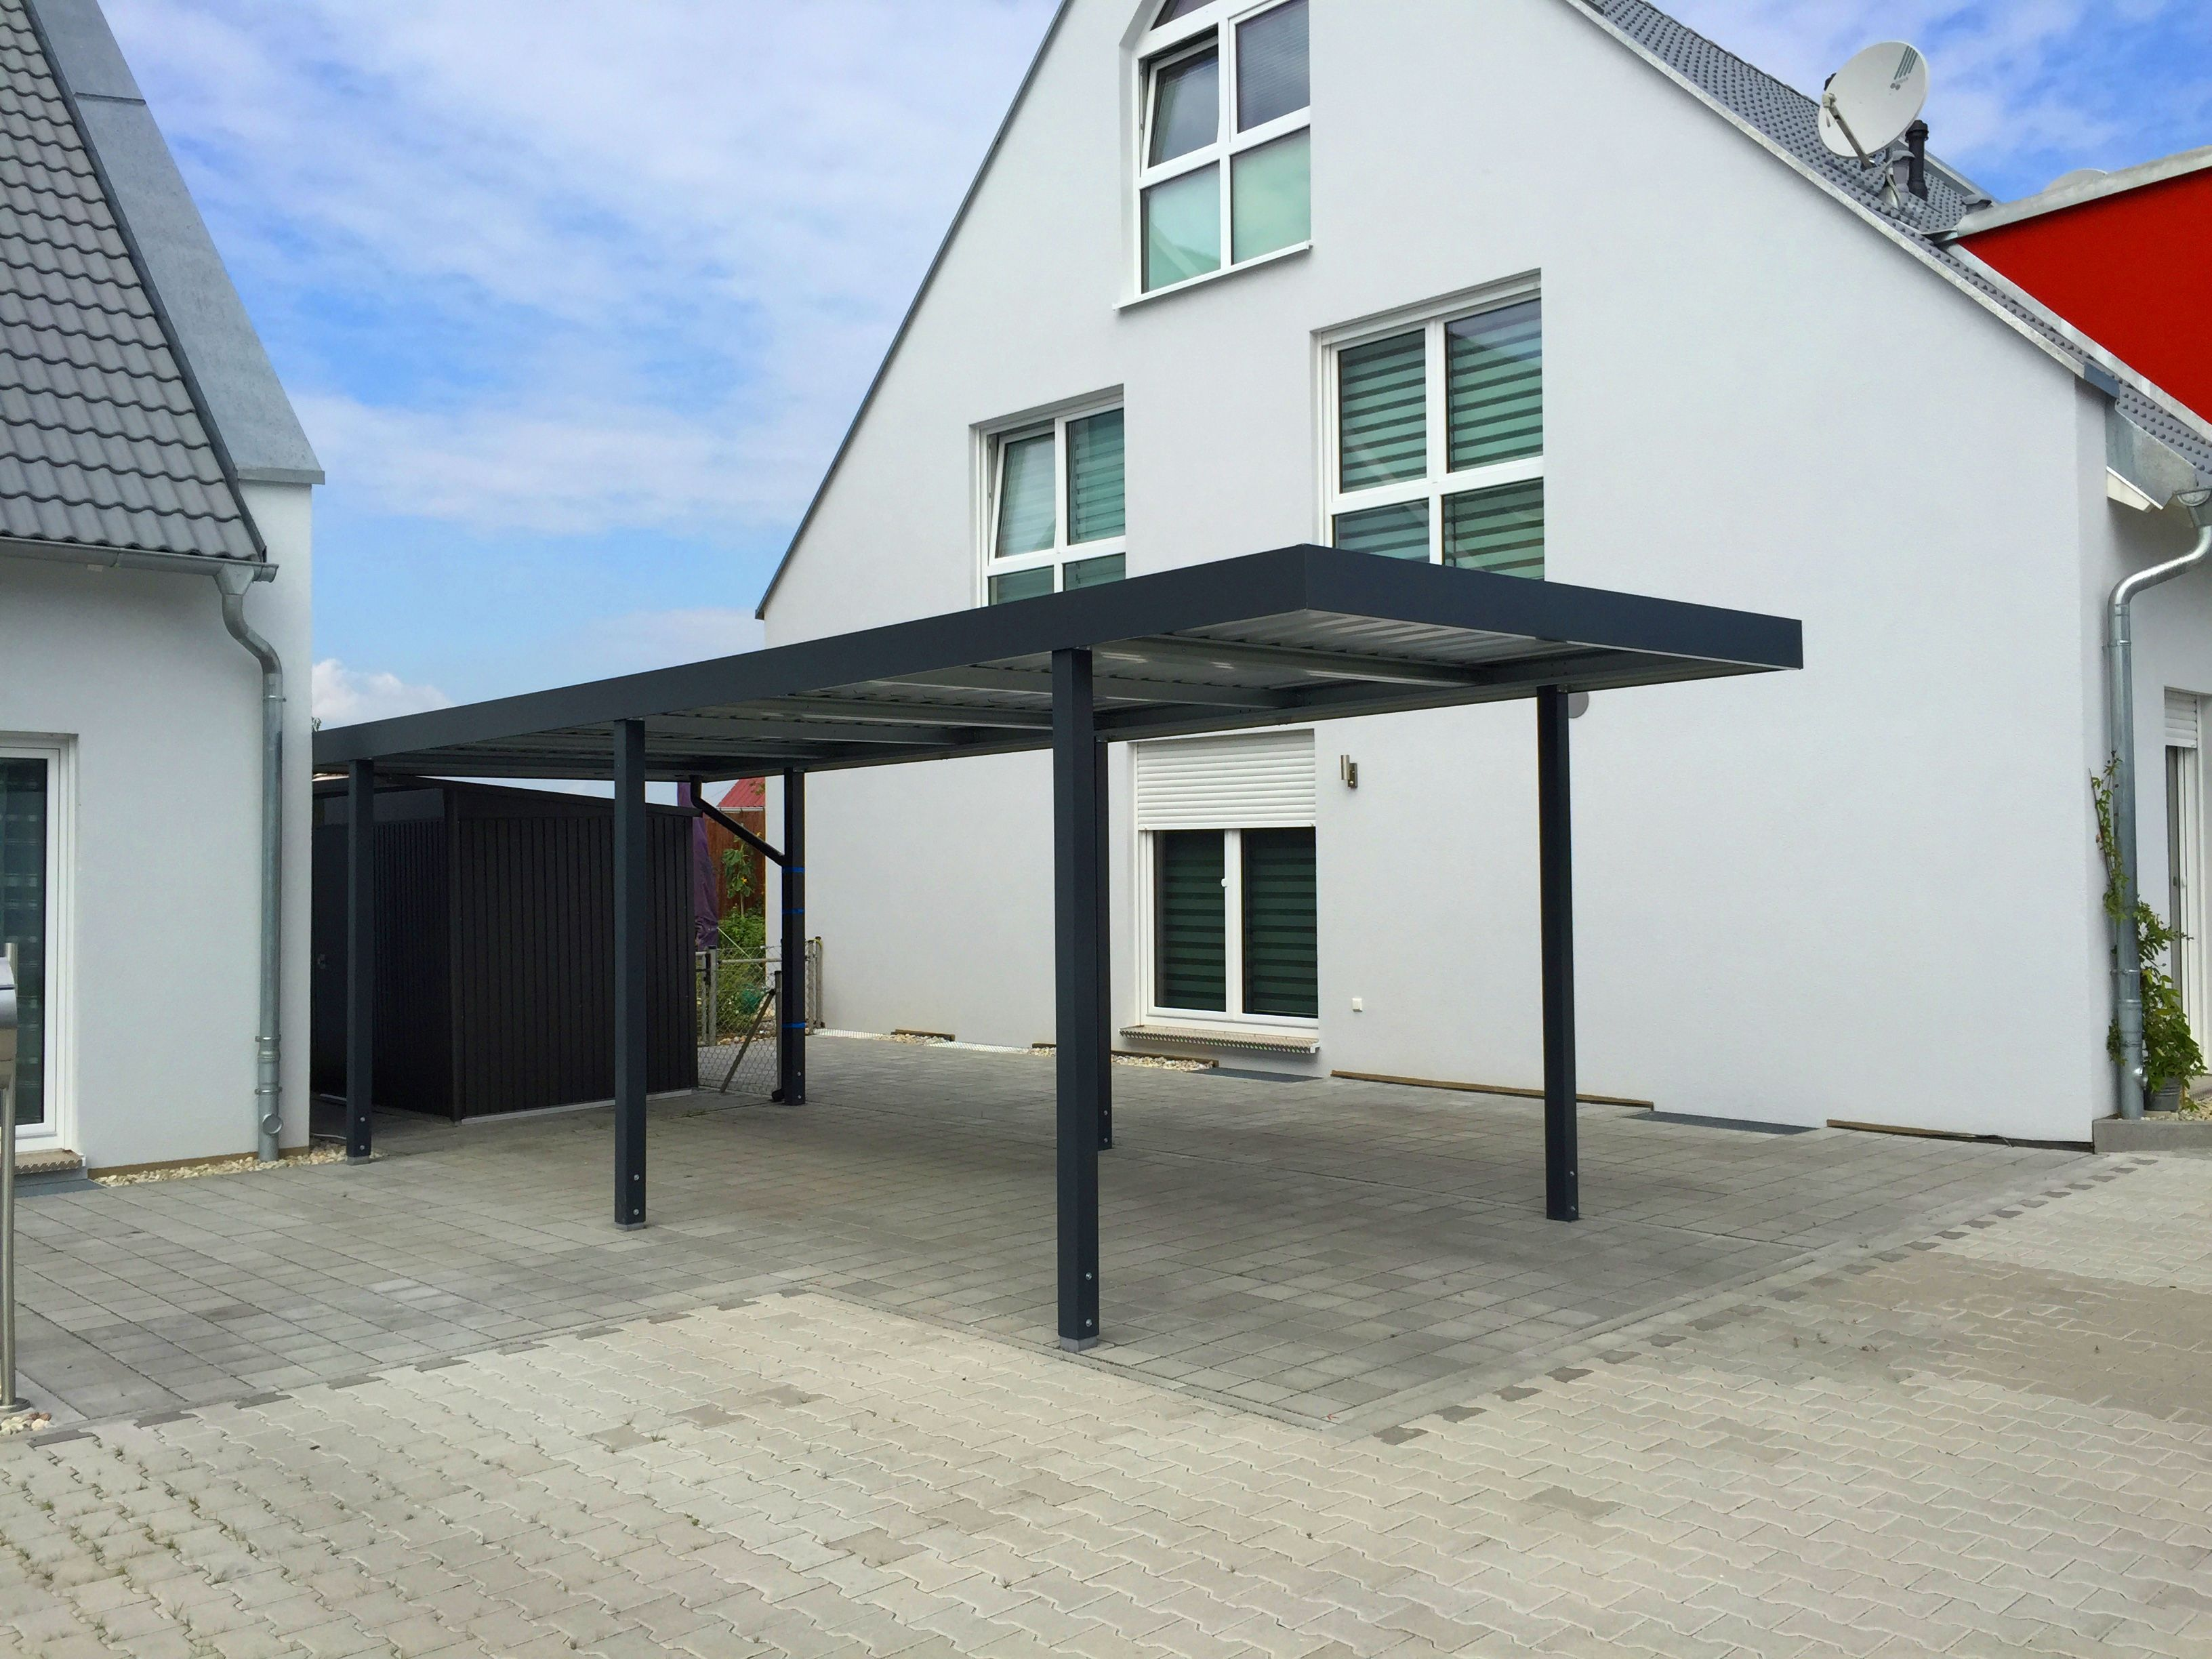 carport metall bausatz carport metall bausatz 2018 think like a jew carport bausatz metall. Black Bedroom Furniture Sets. Home Design Ideas